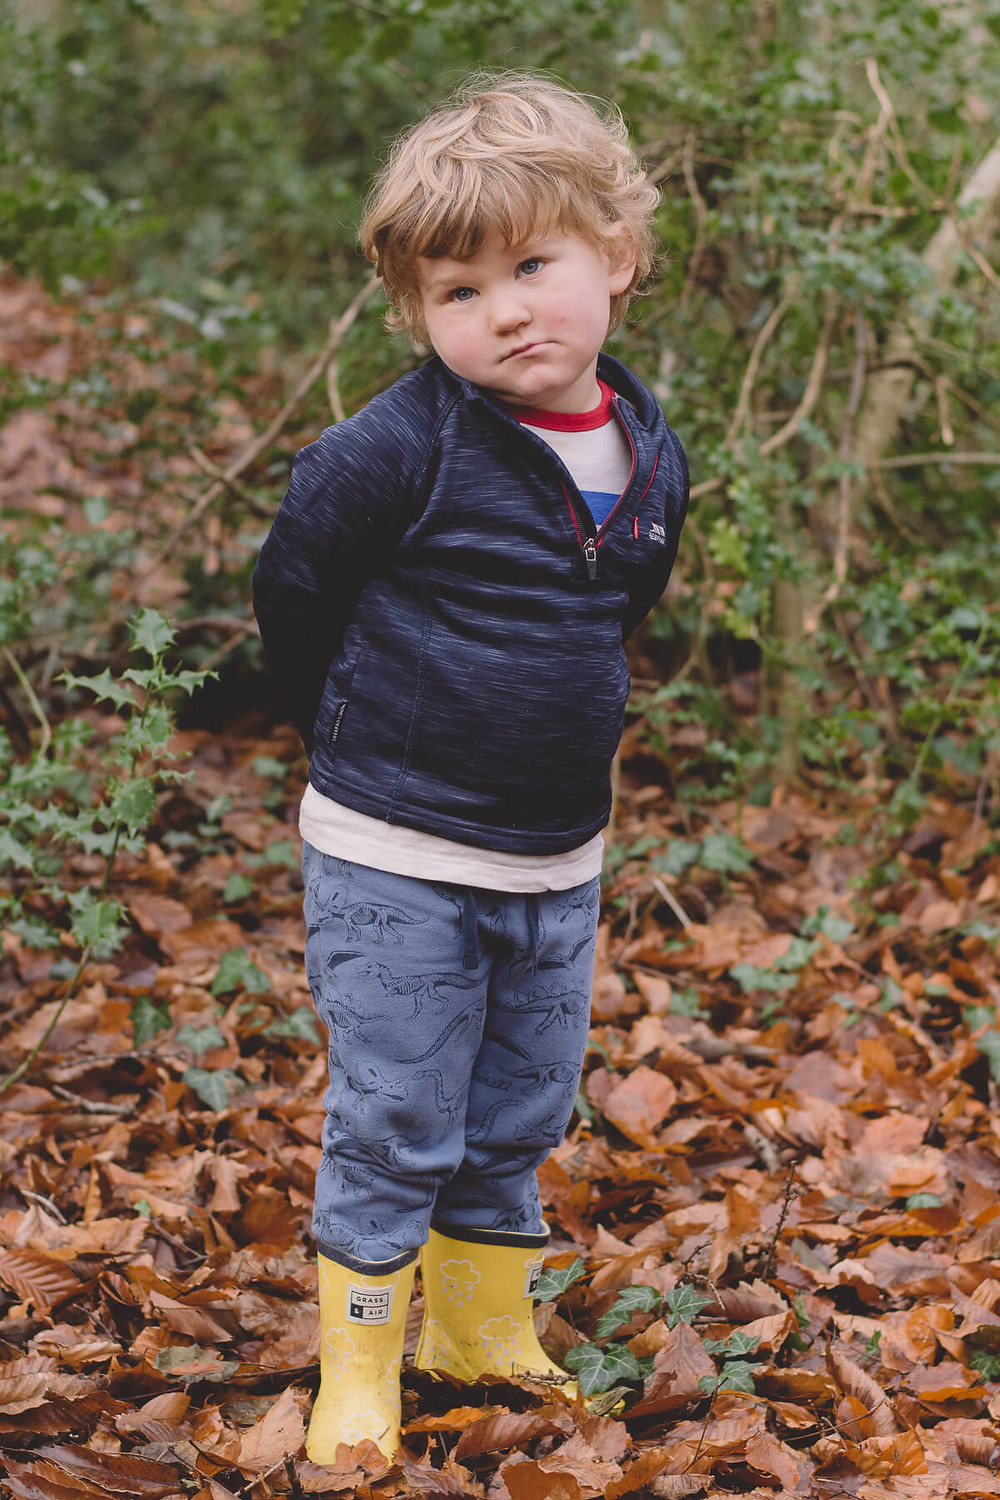 family photoshoot south wales boy in forest looking serious